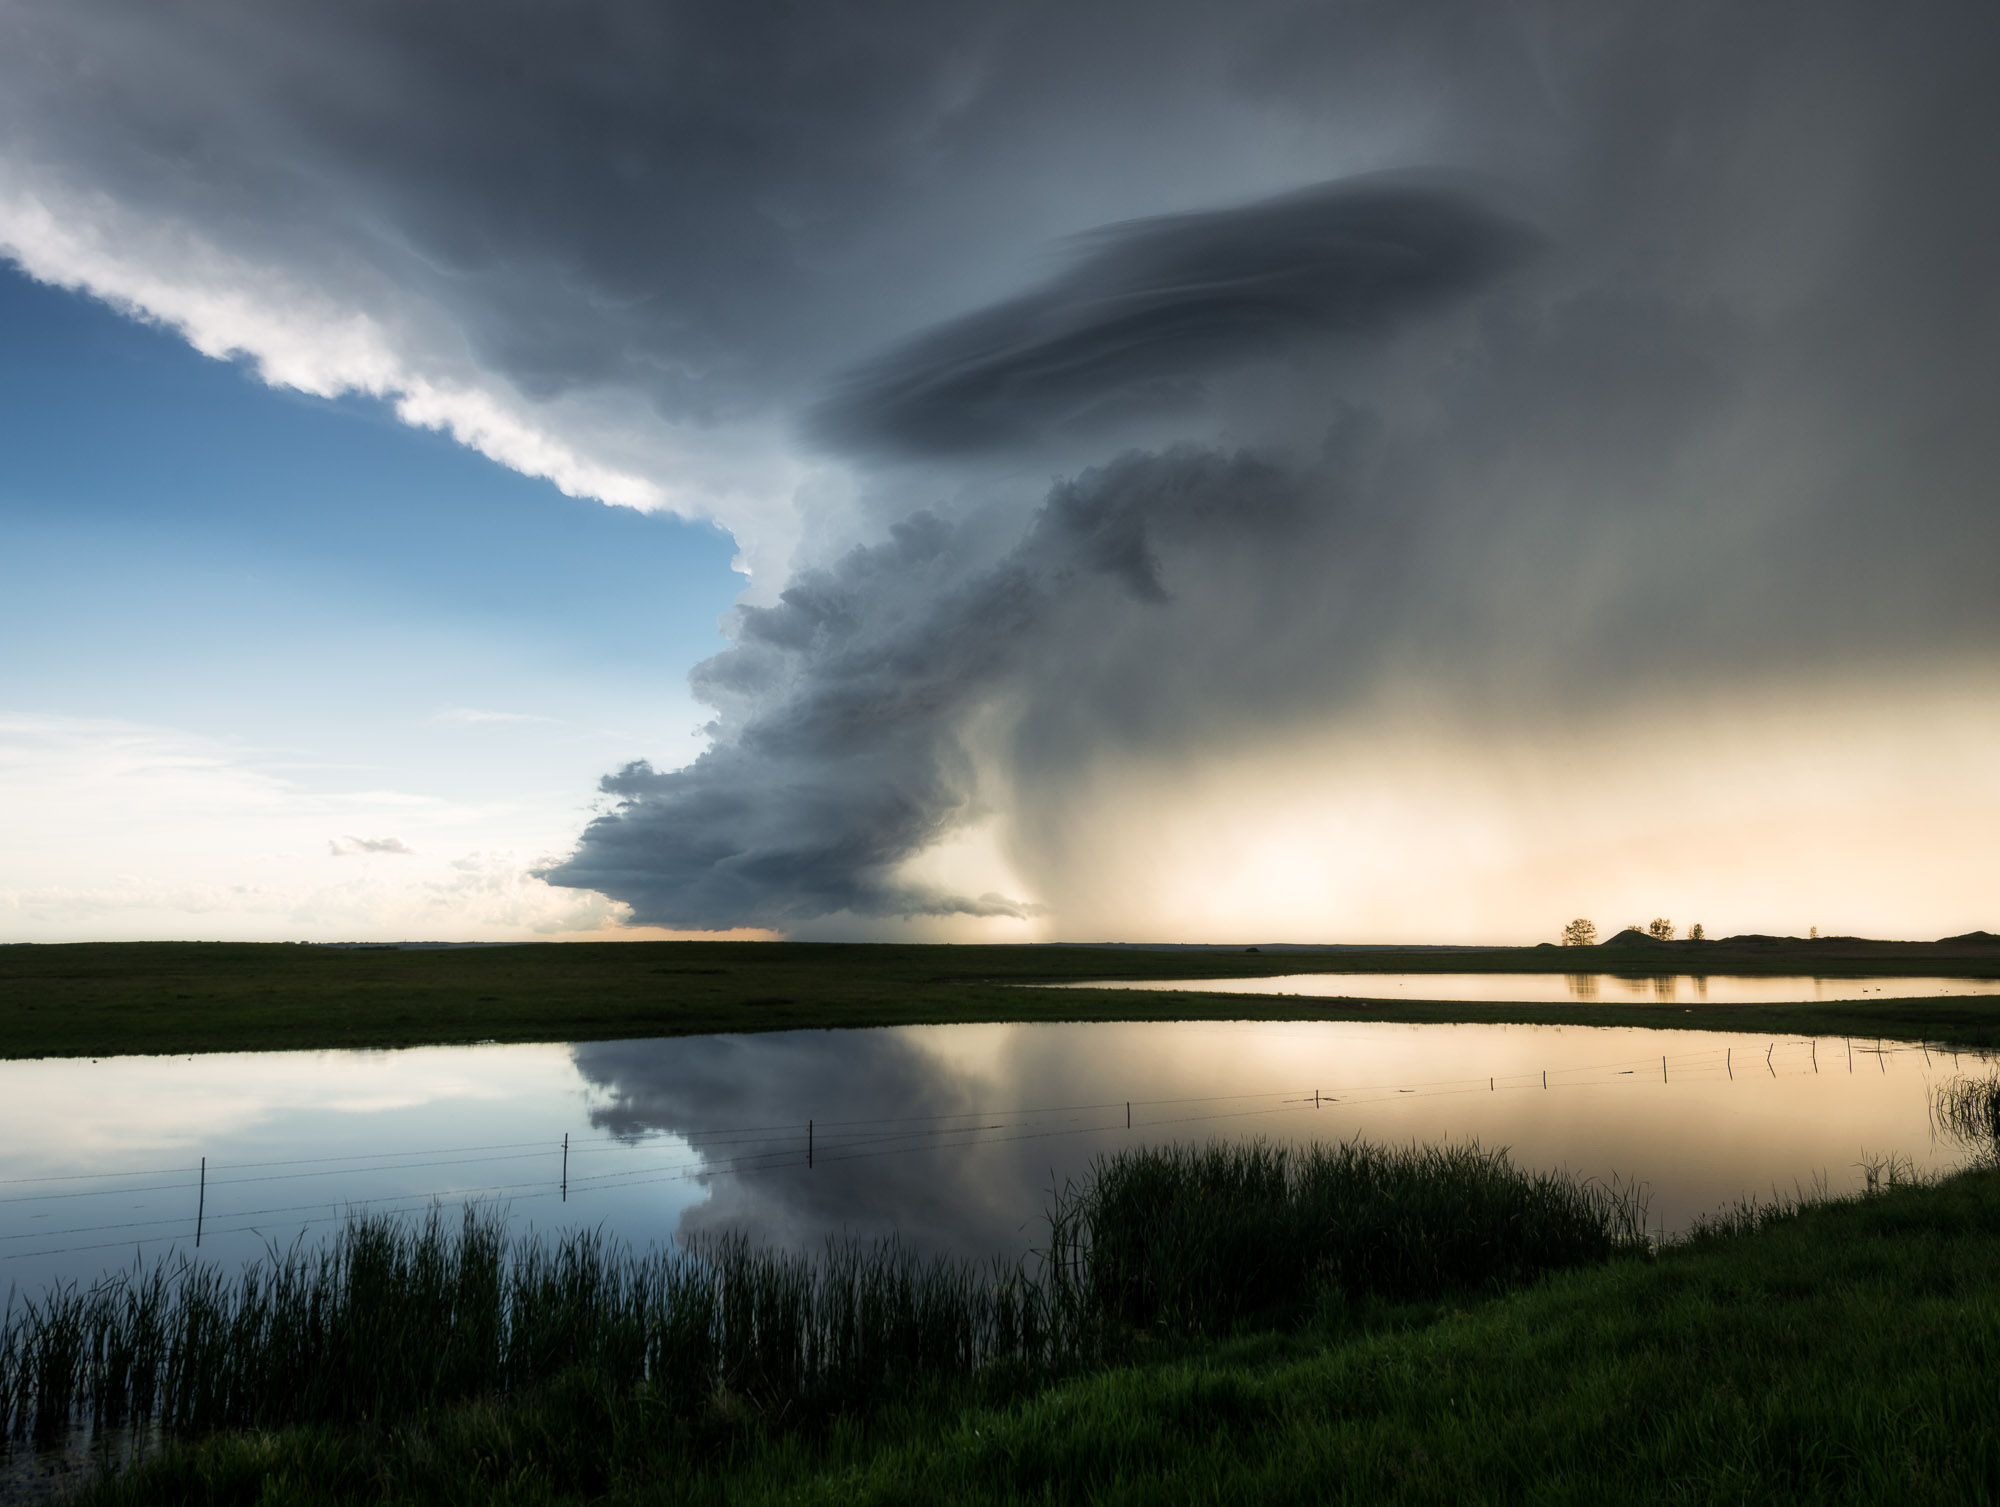 Dying supercell storm - Strasburg, North Dakota